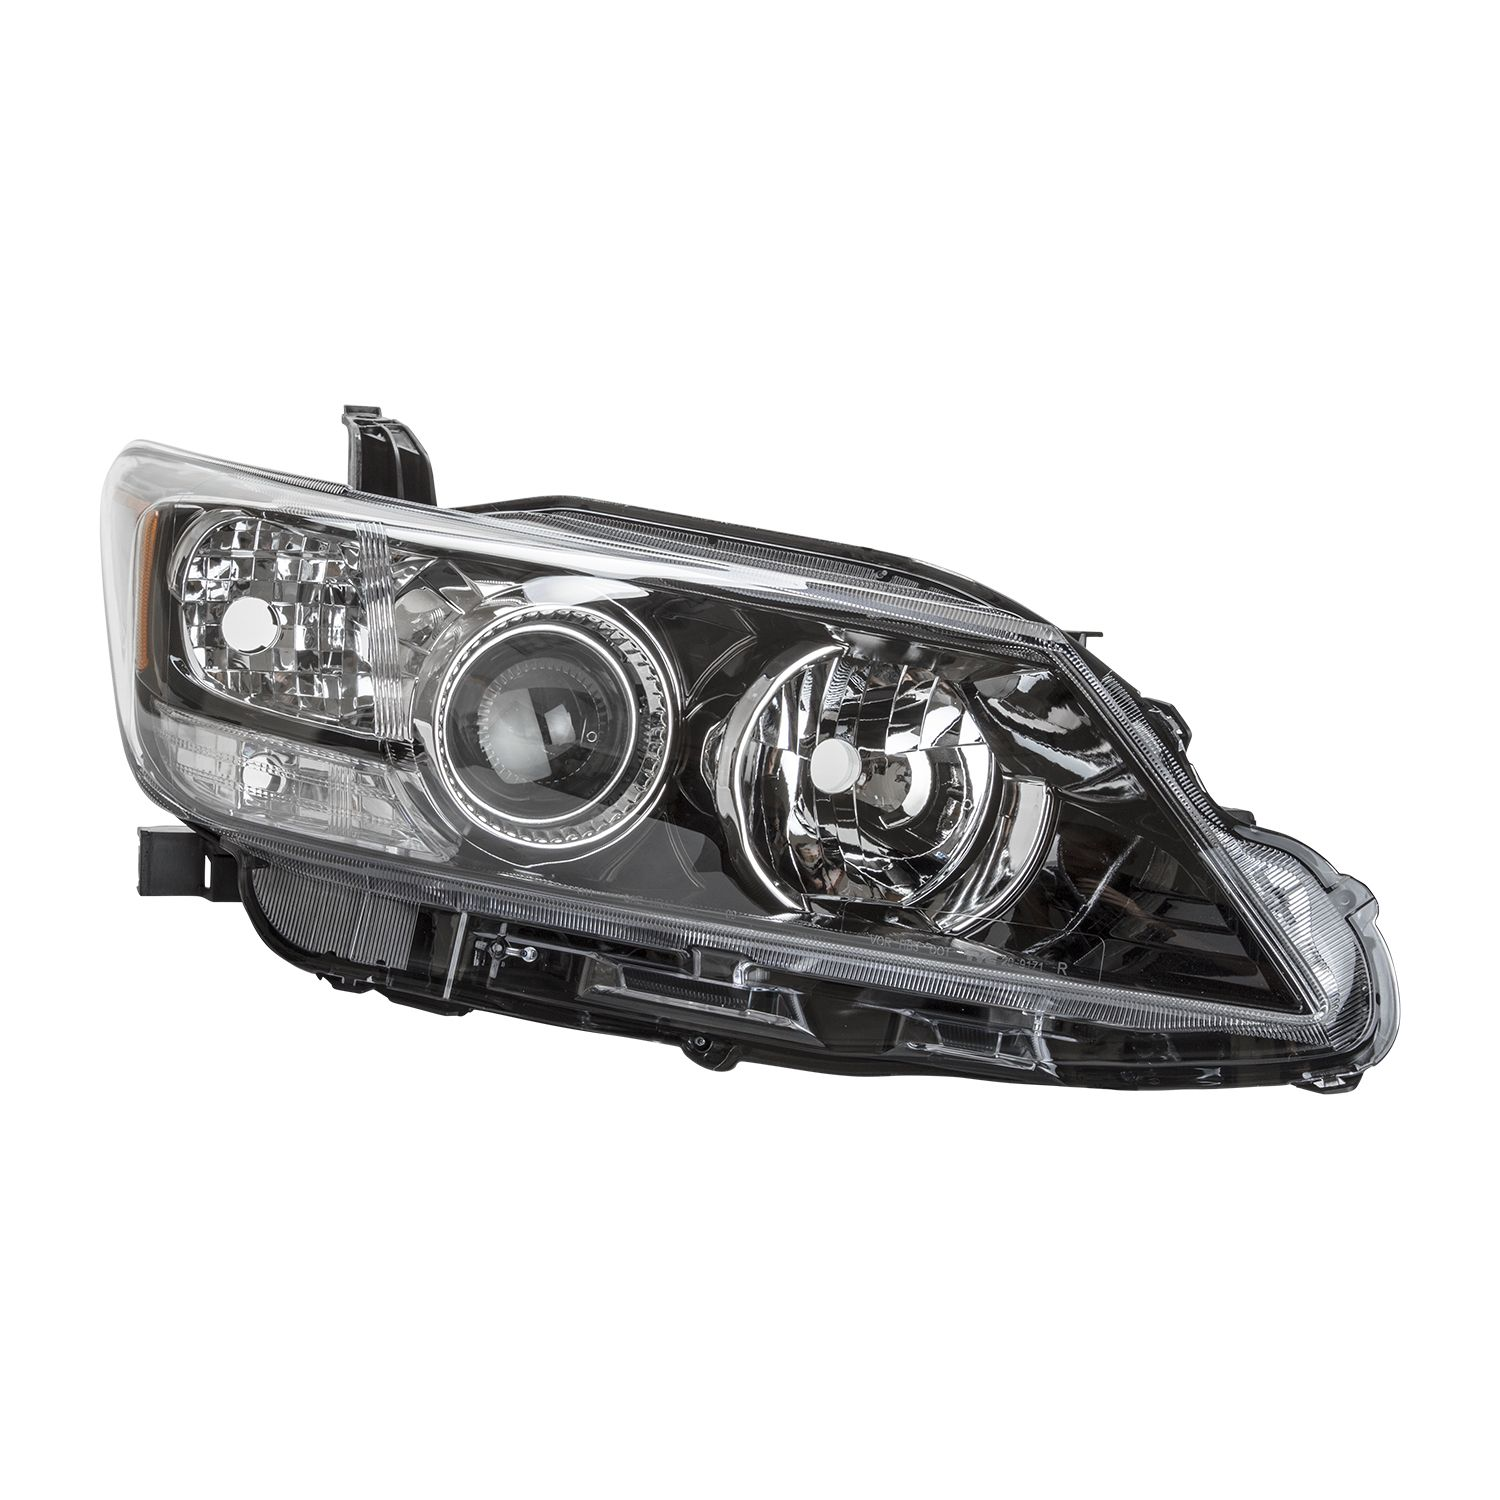 TYC 20-9171-01-1 Toyota Scion tC Right Replacement Head Lamp